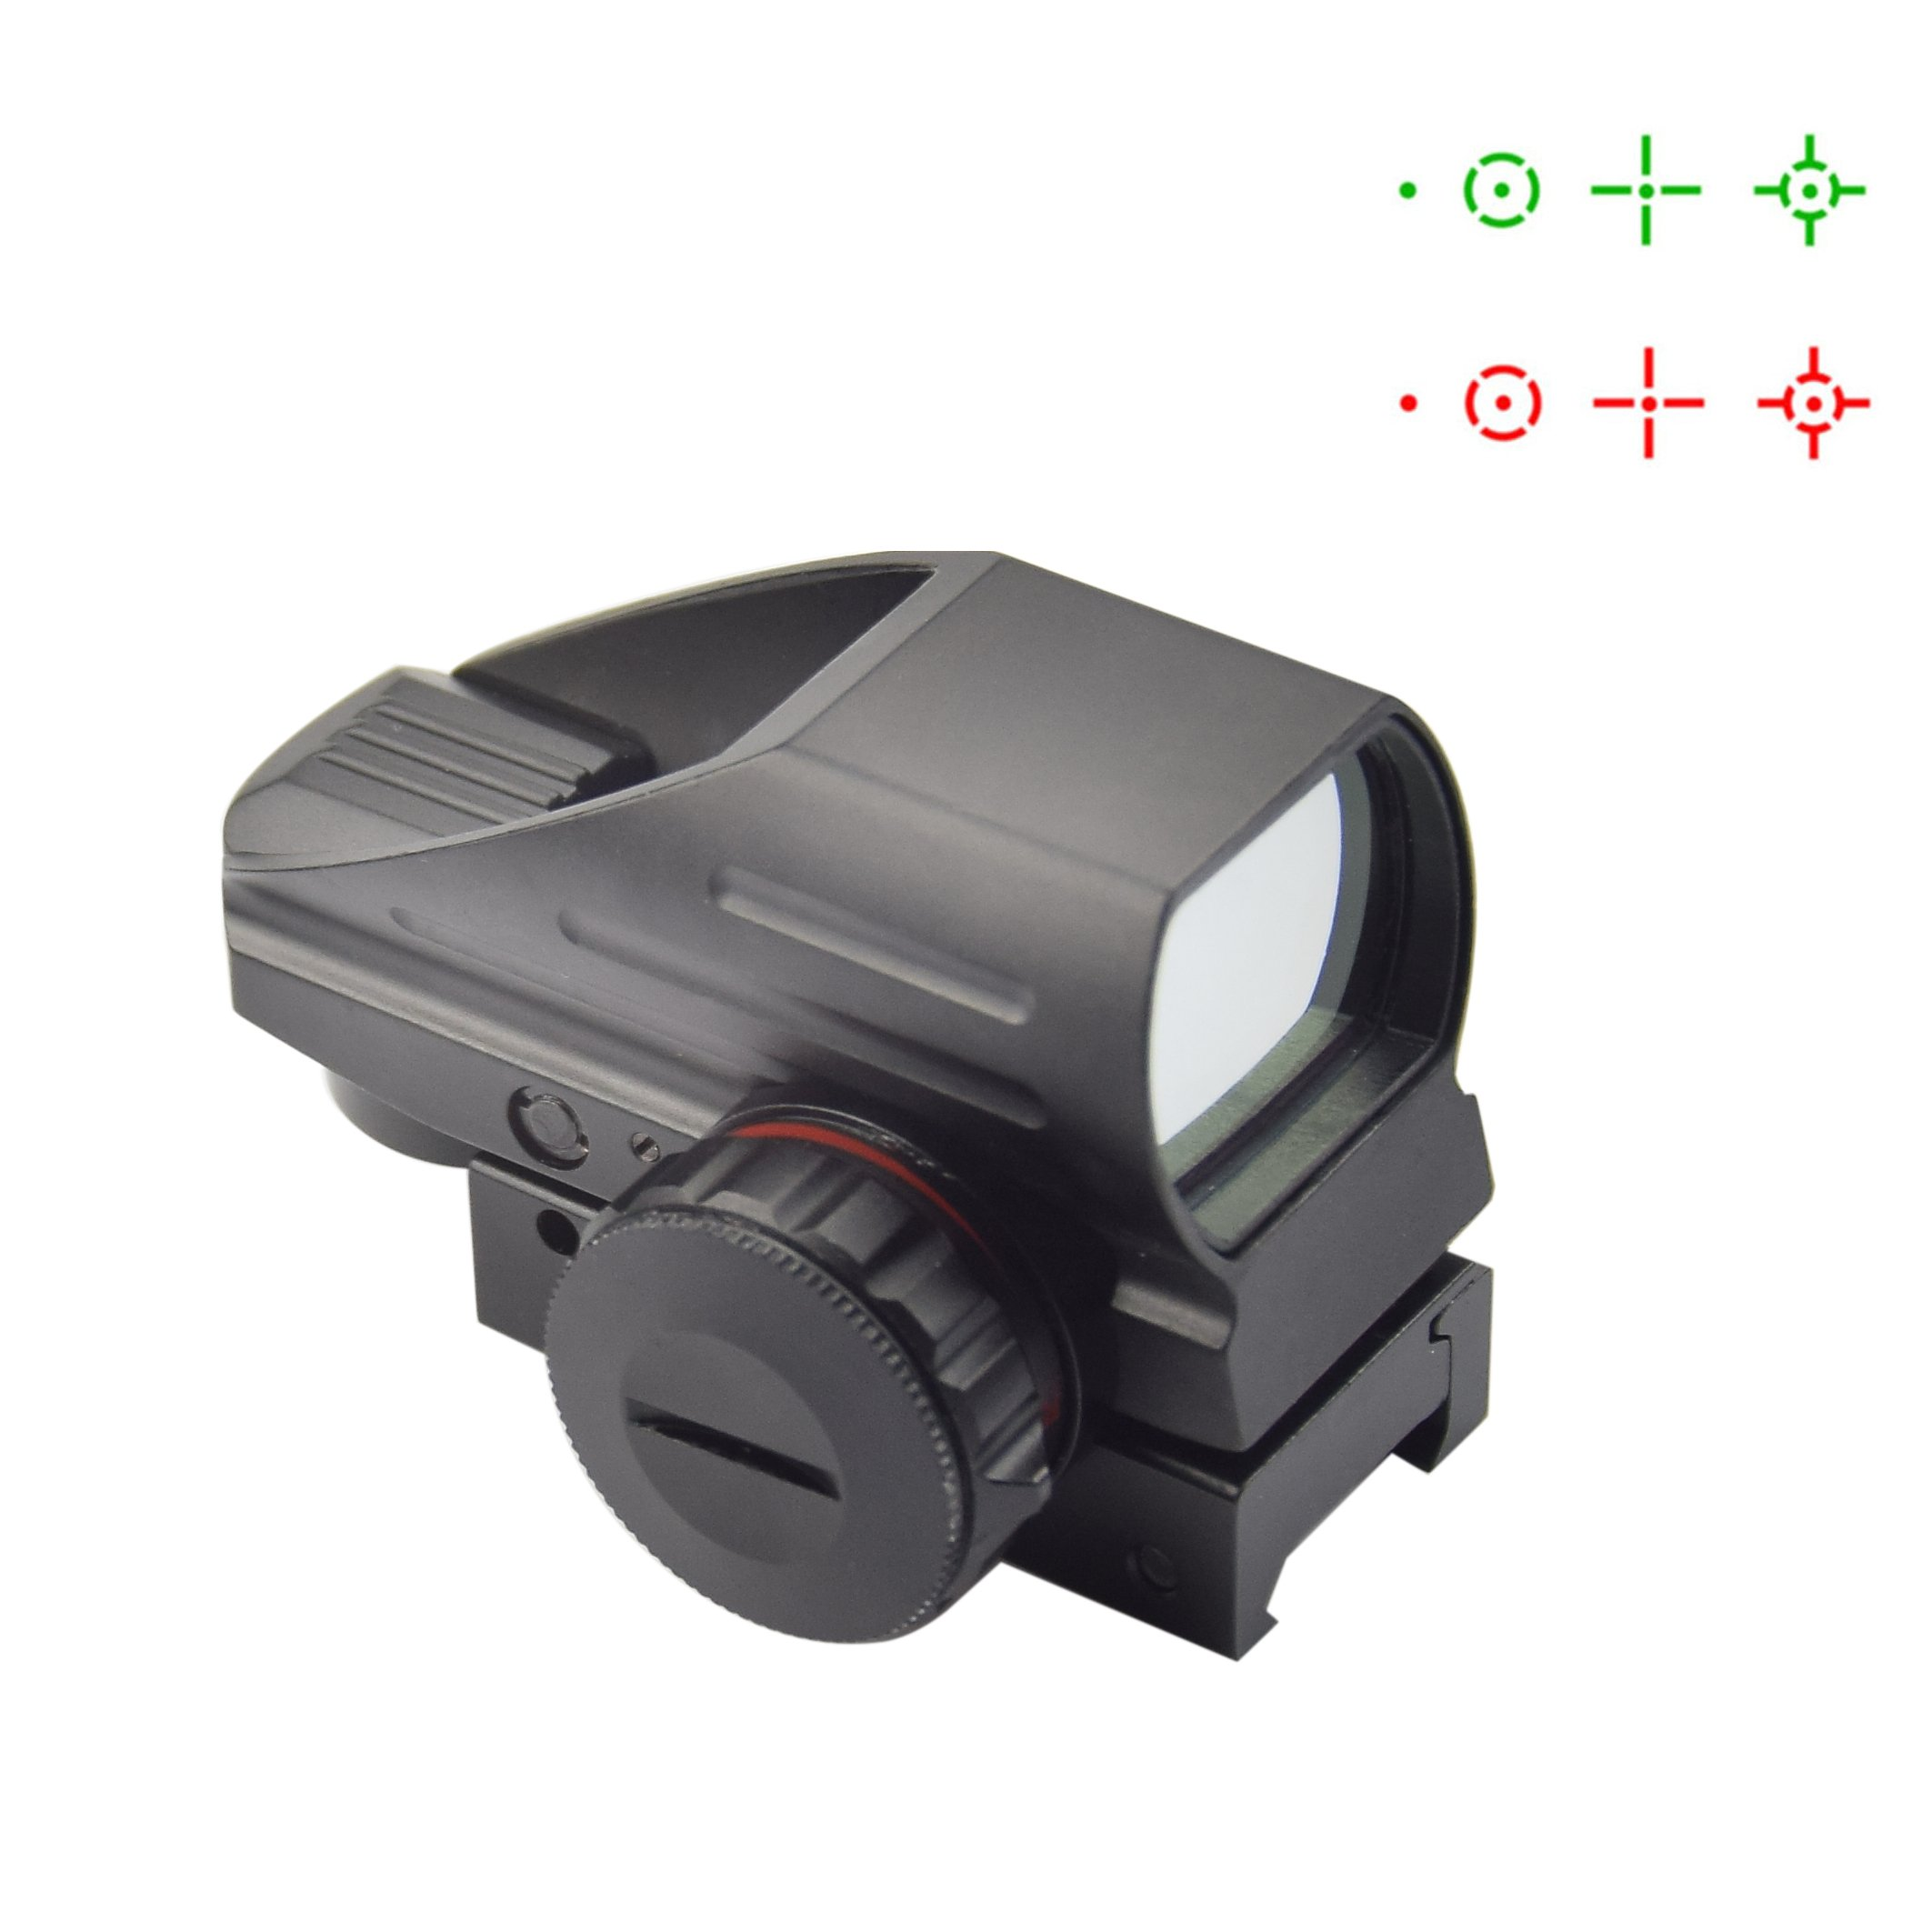 Fyland Red/Green Reflex Sight Gun Sight Scope with 4 reticles, 1x 33 mm